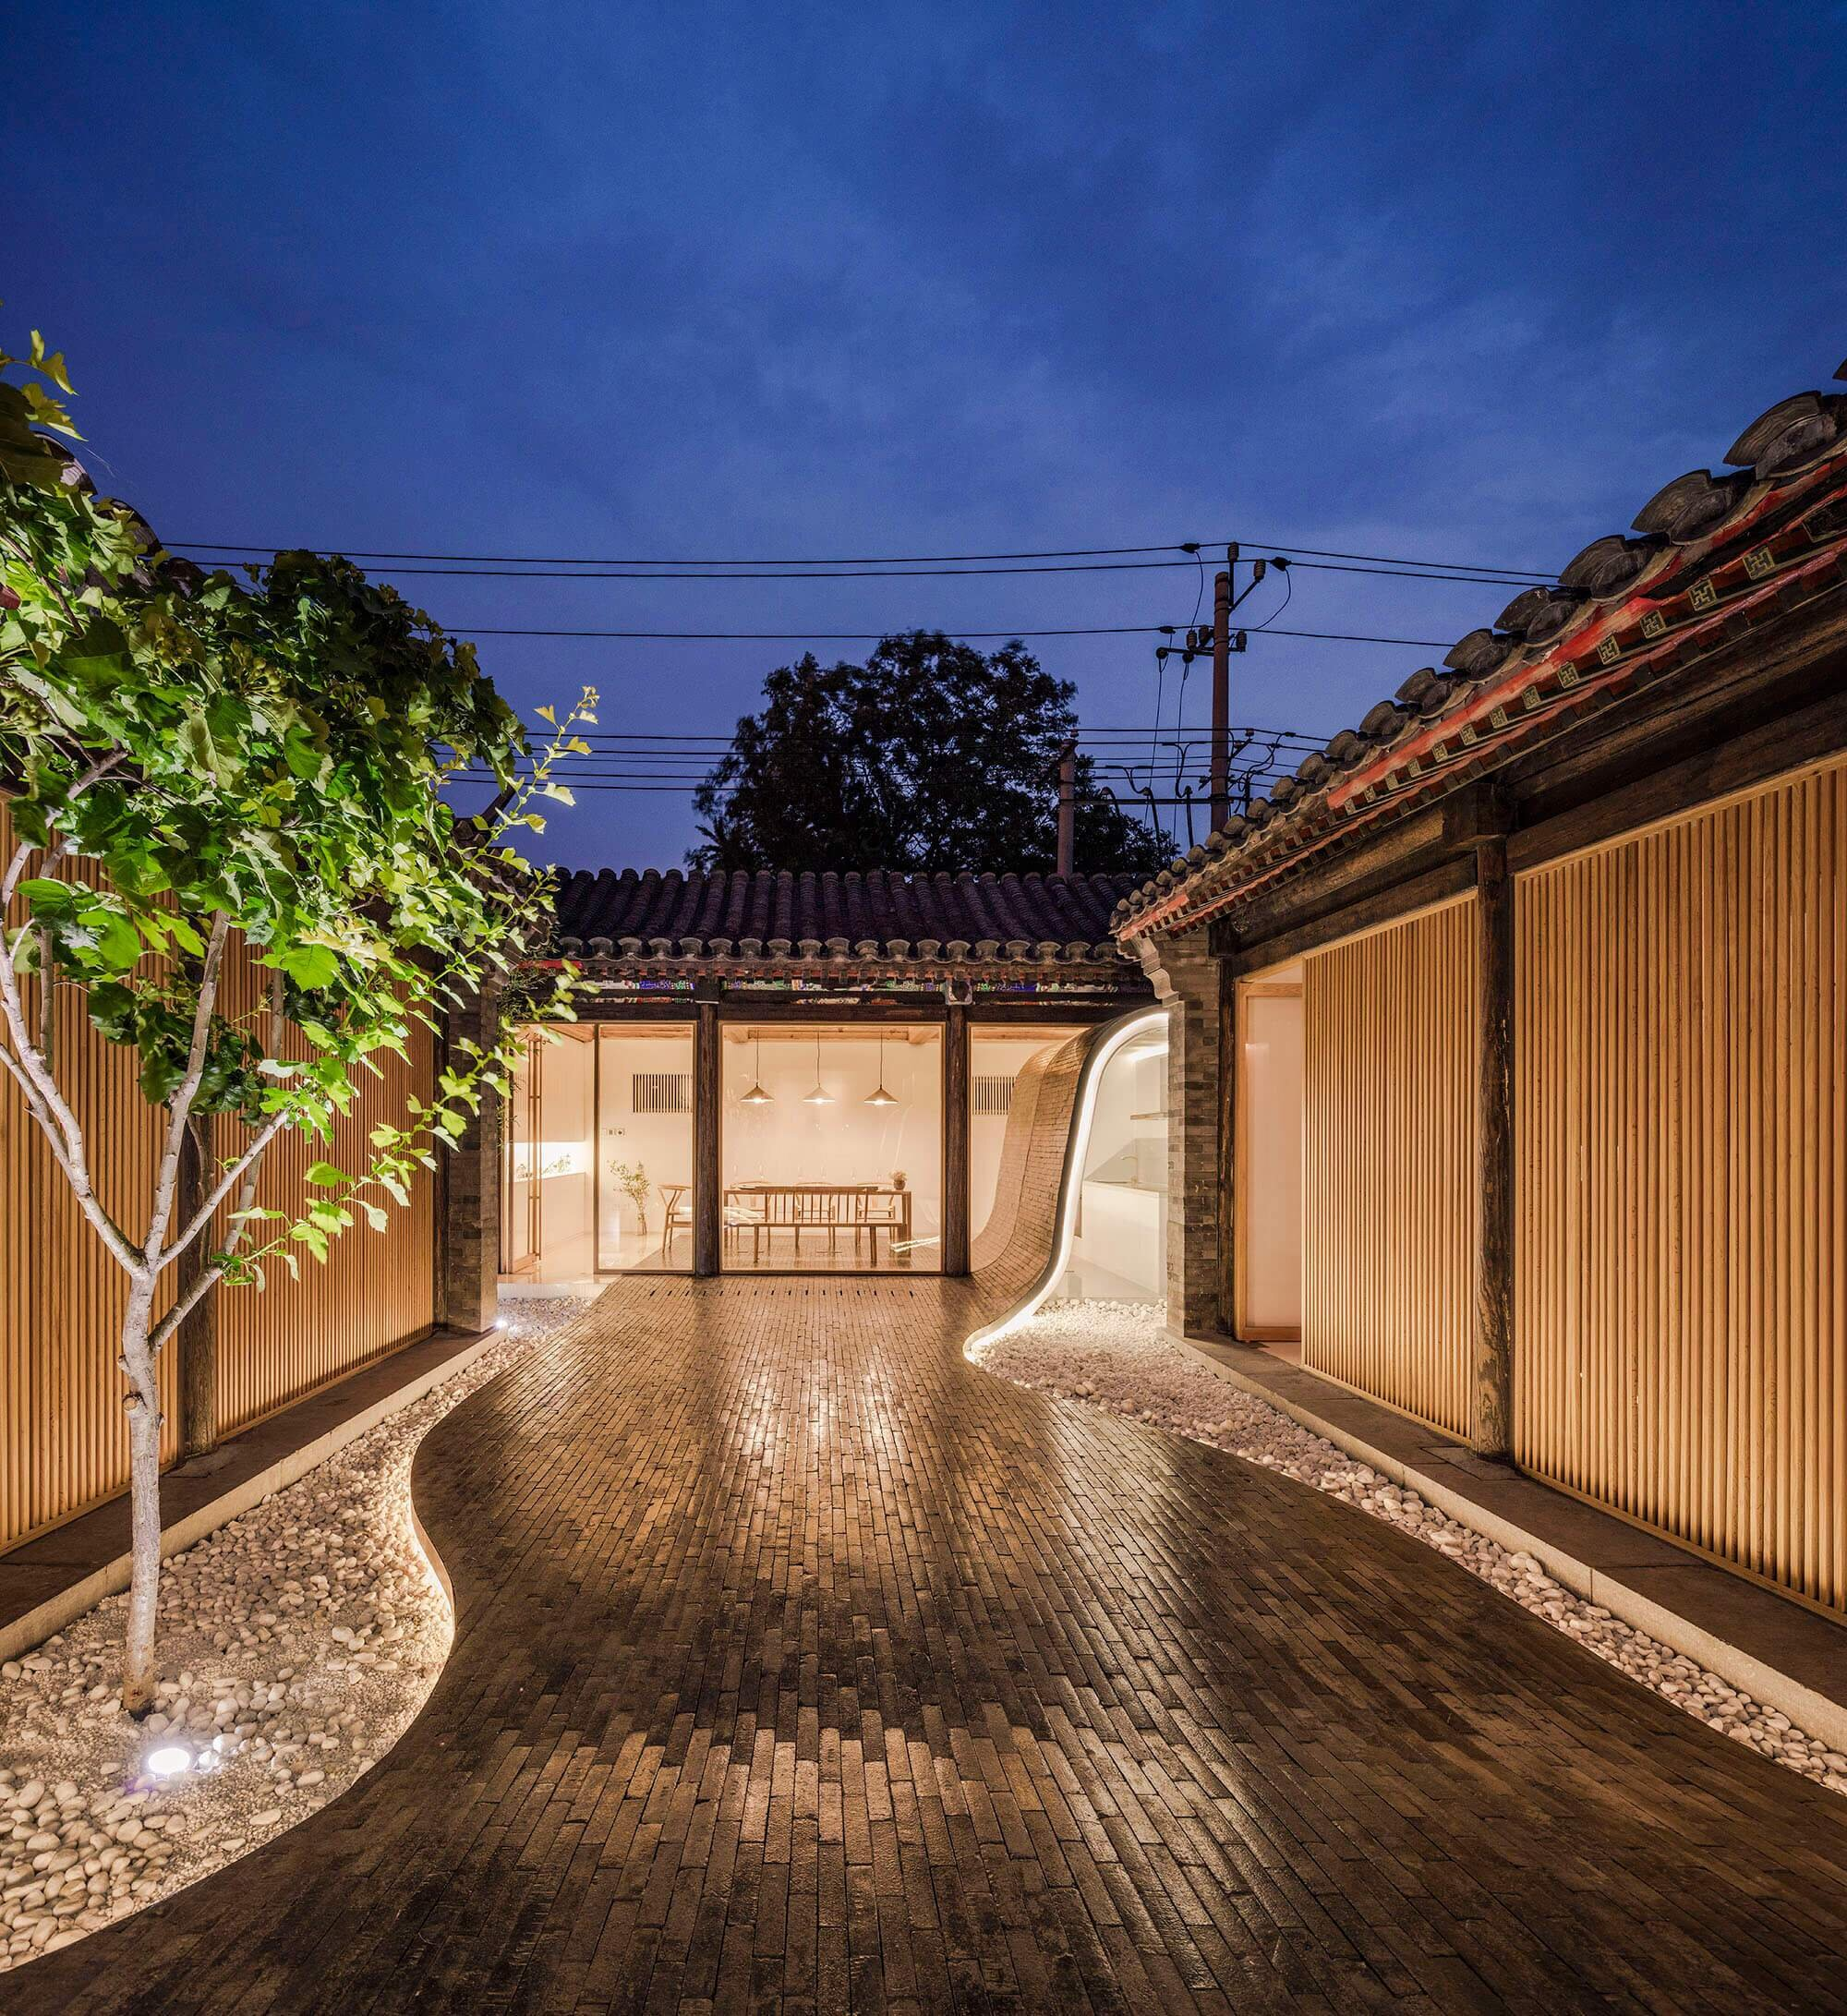 Beijing Courtyard Home By Archstudio Balances Modern And